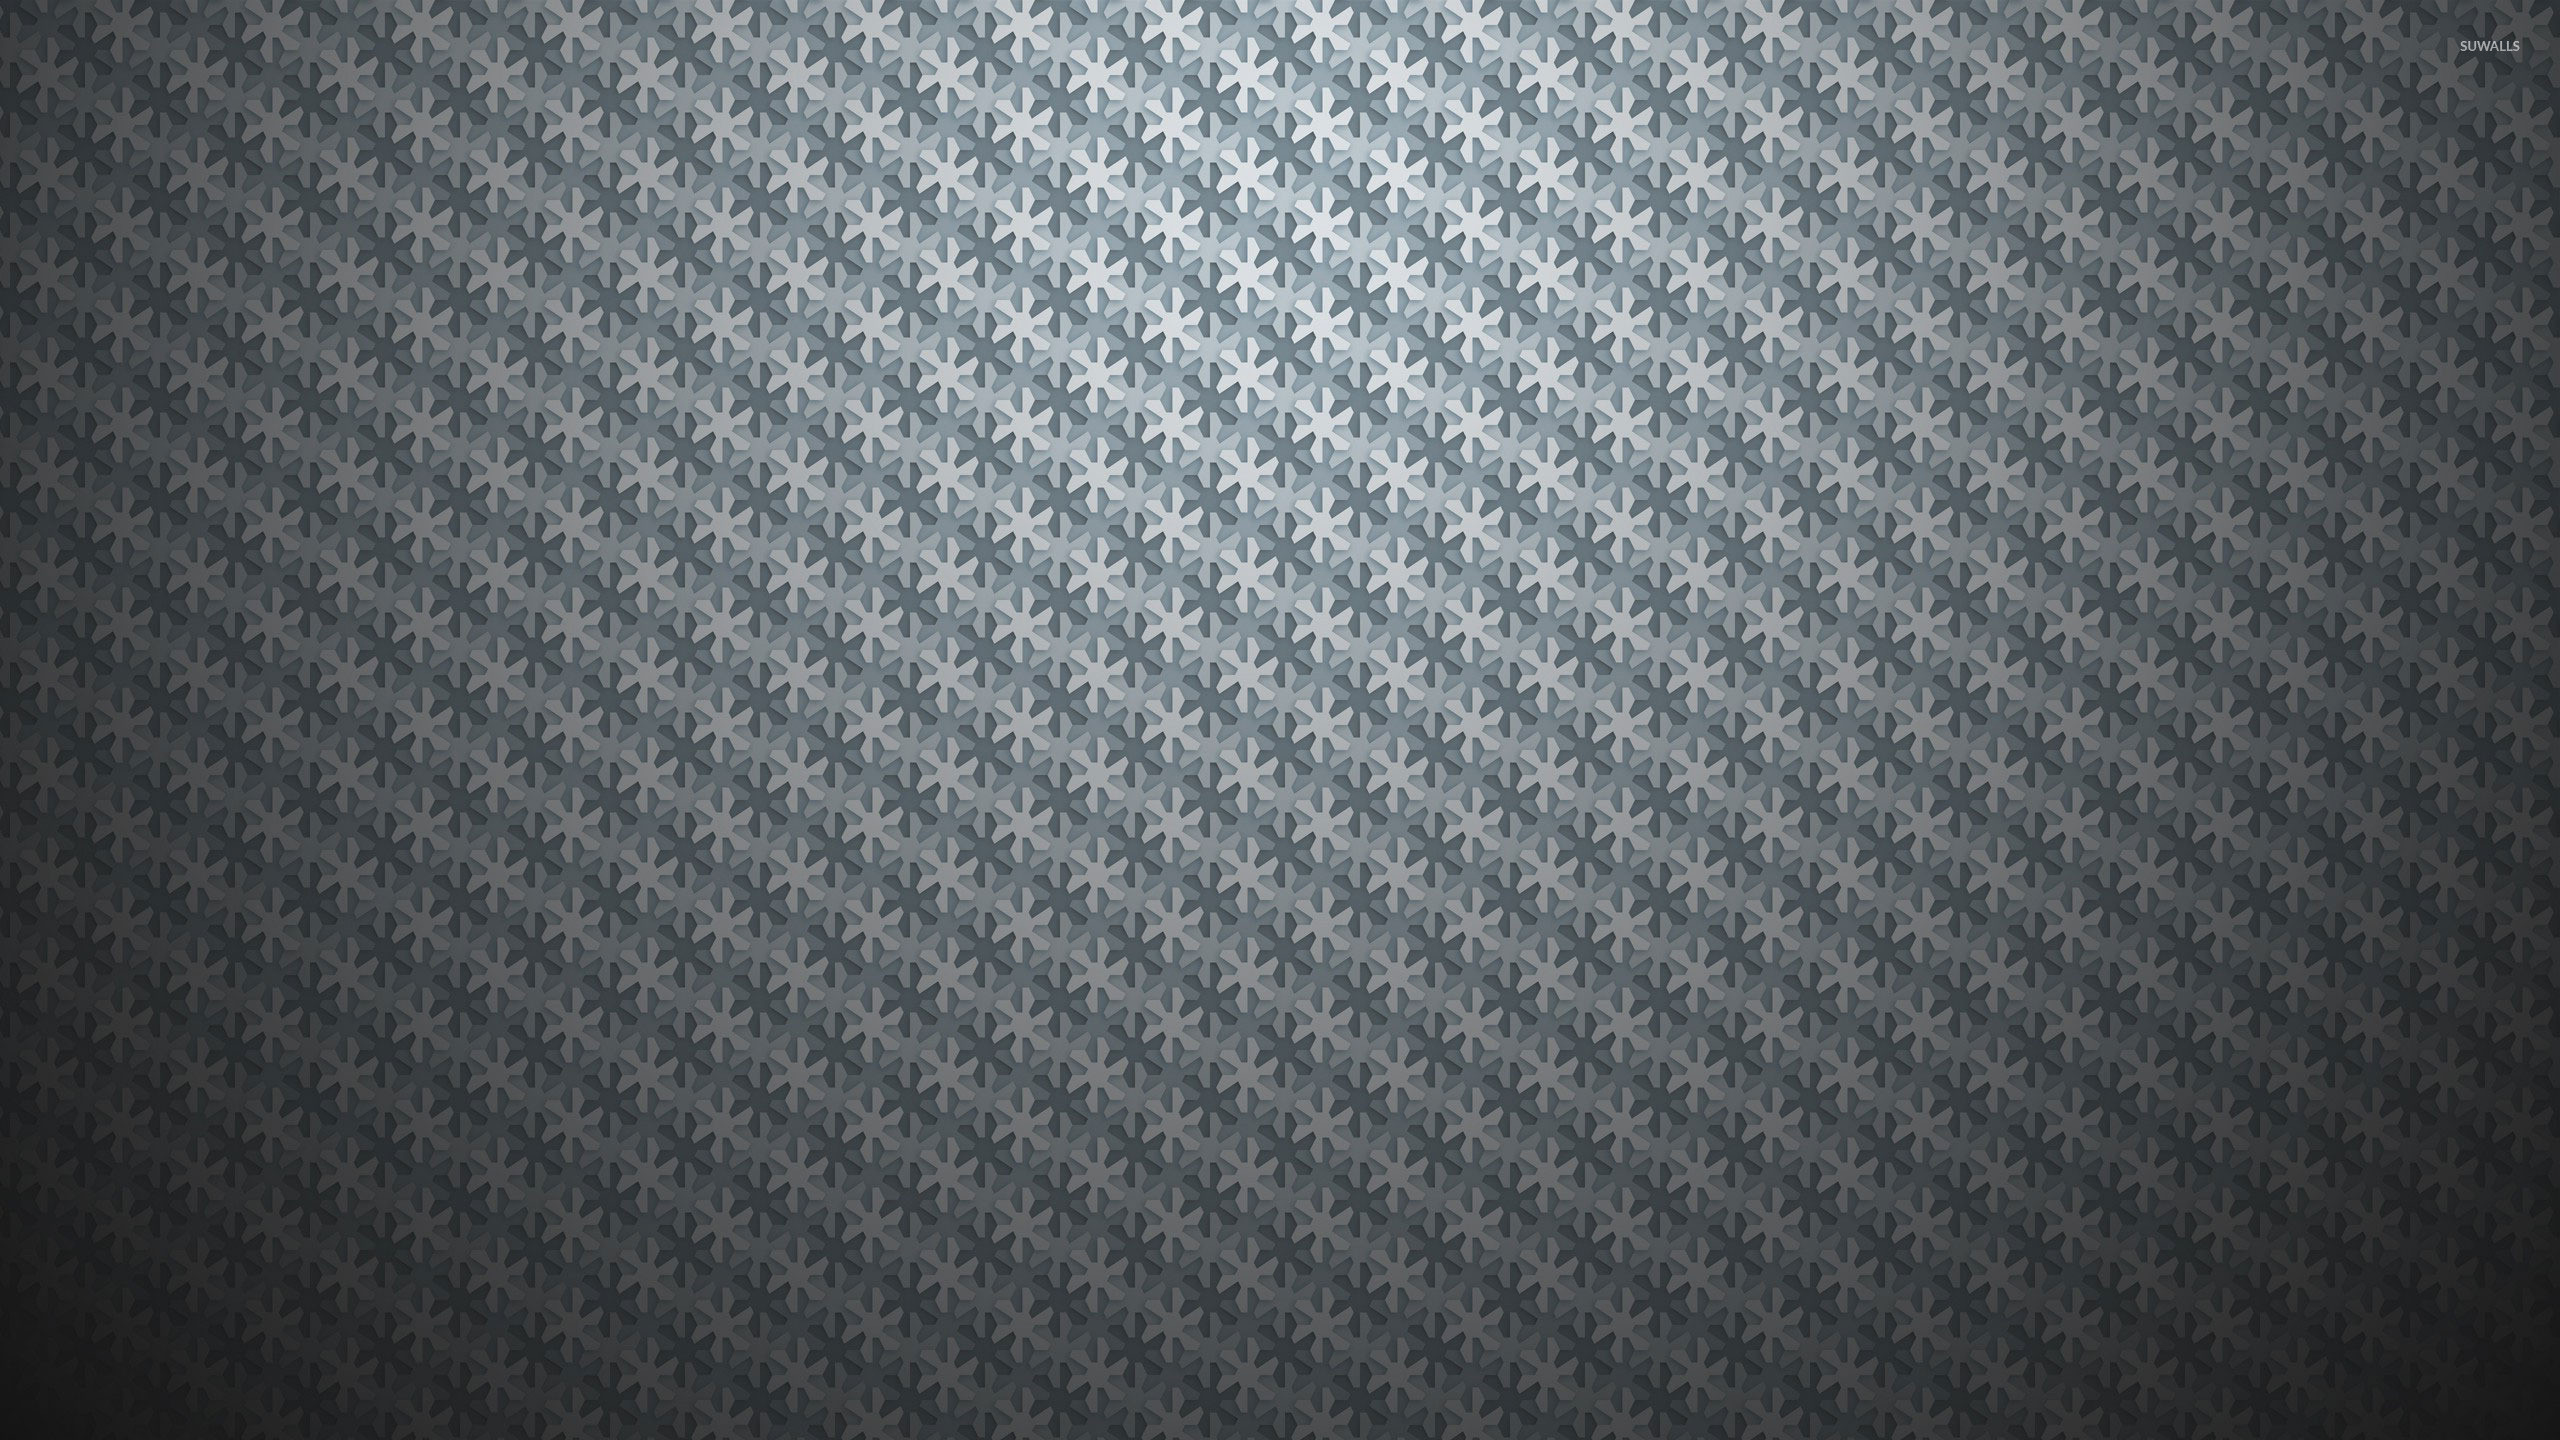 2560x1440 Grey Patterned Wallpaper Fresh Grey Floral Pattern Wallpaper Abstract  Wallpapers